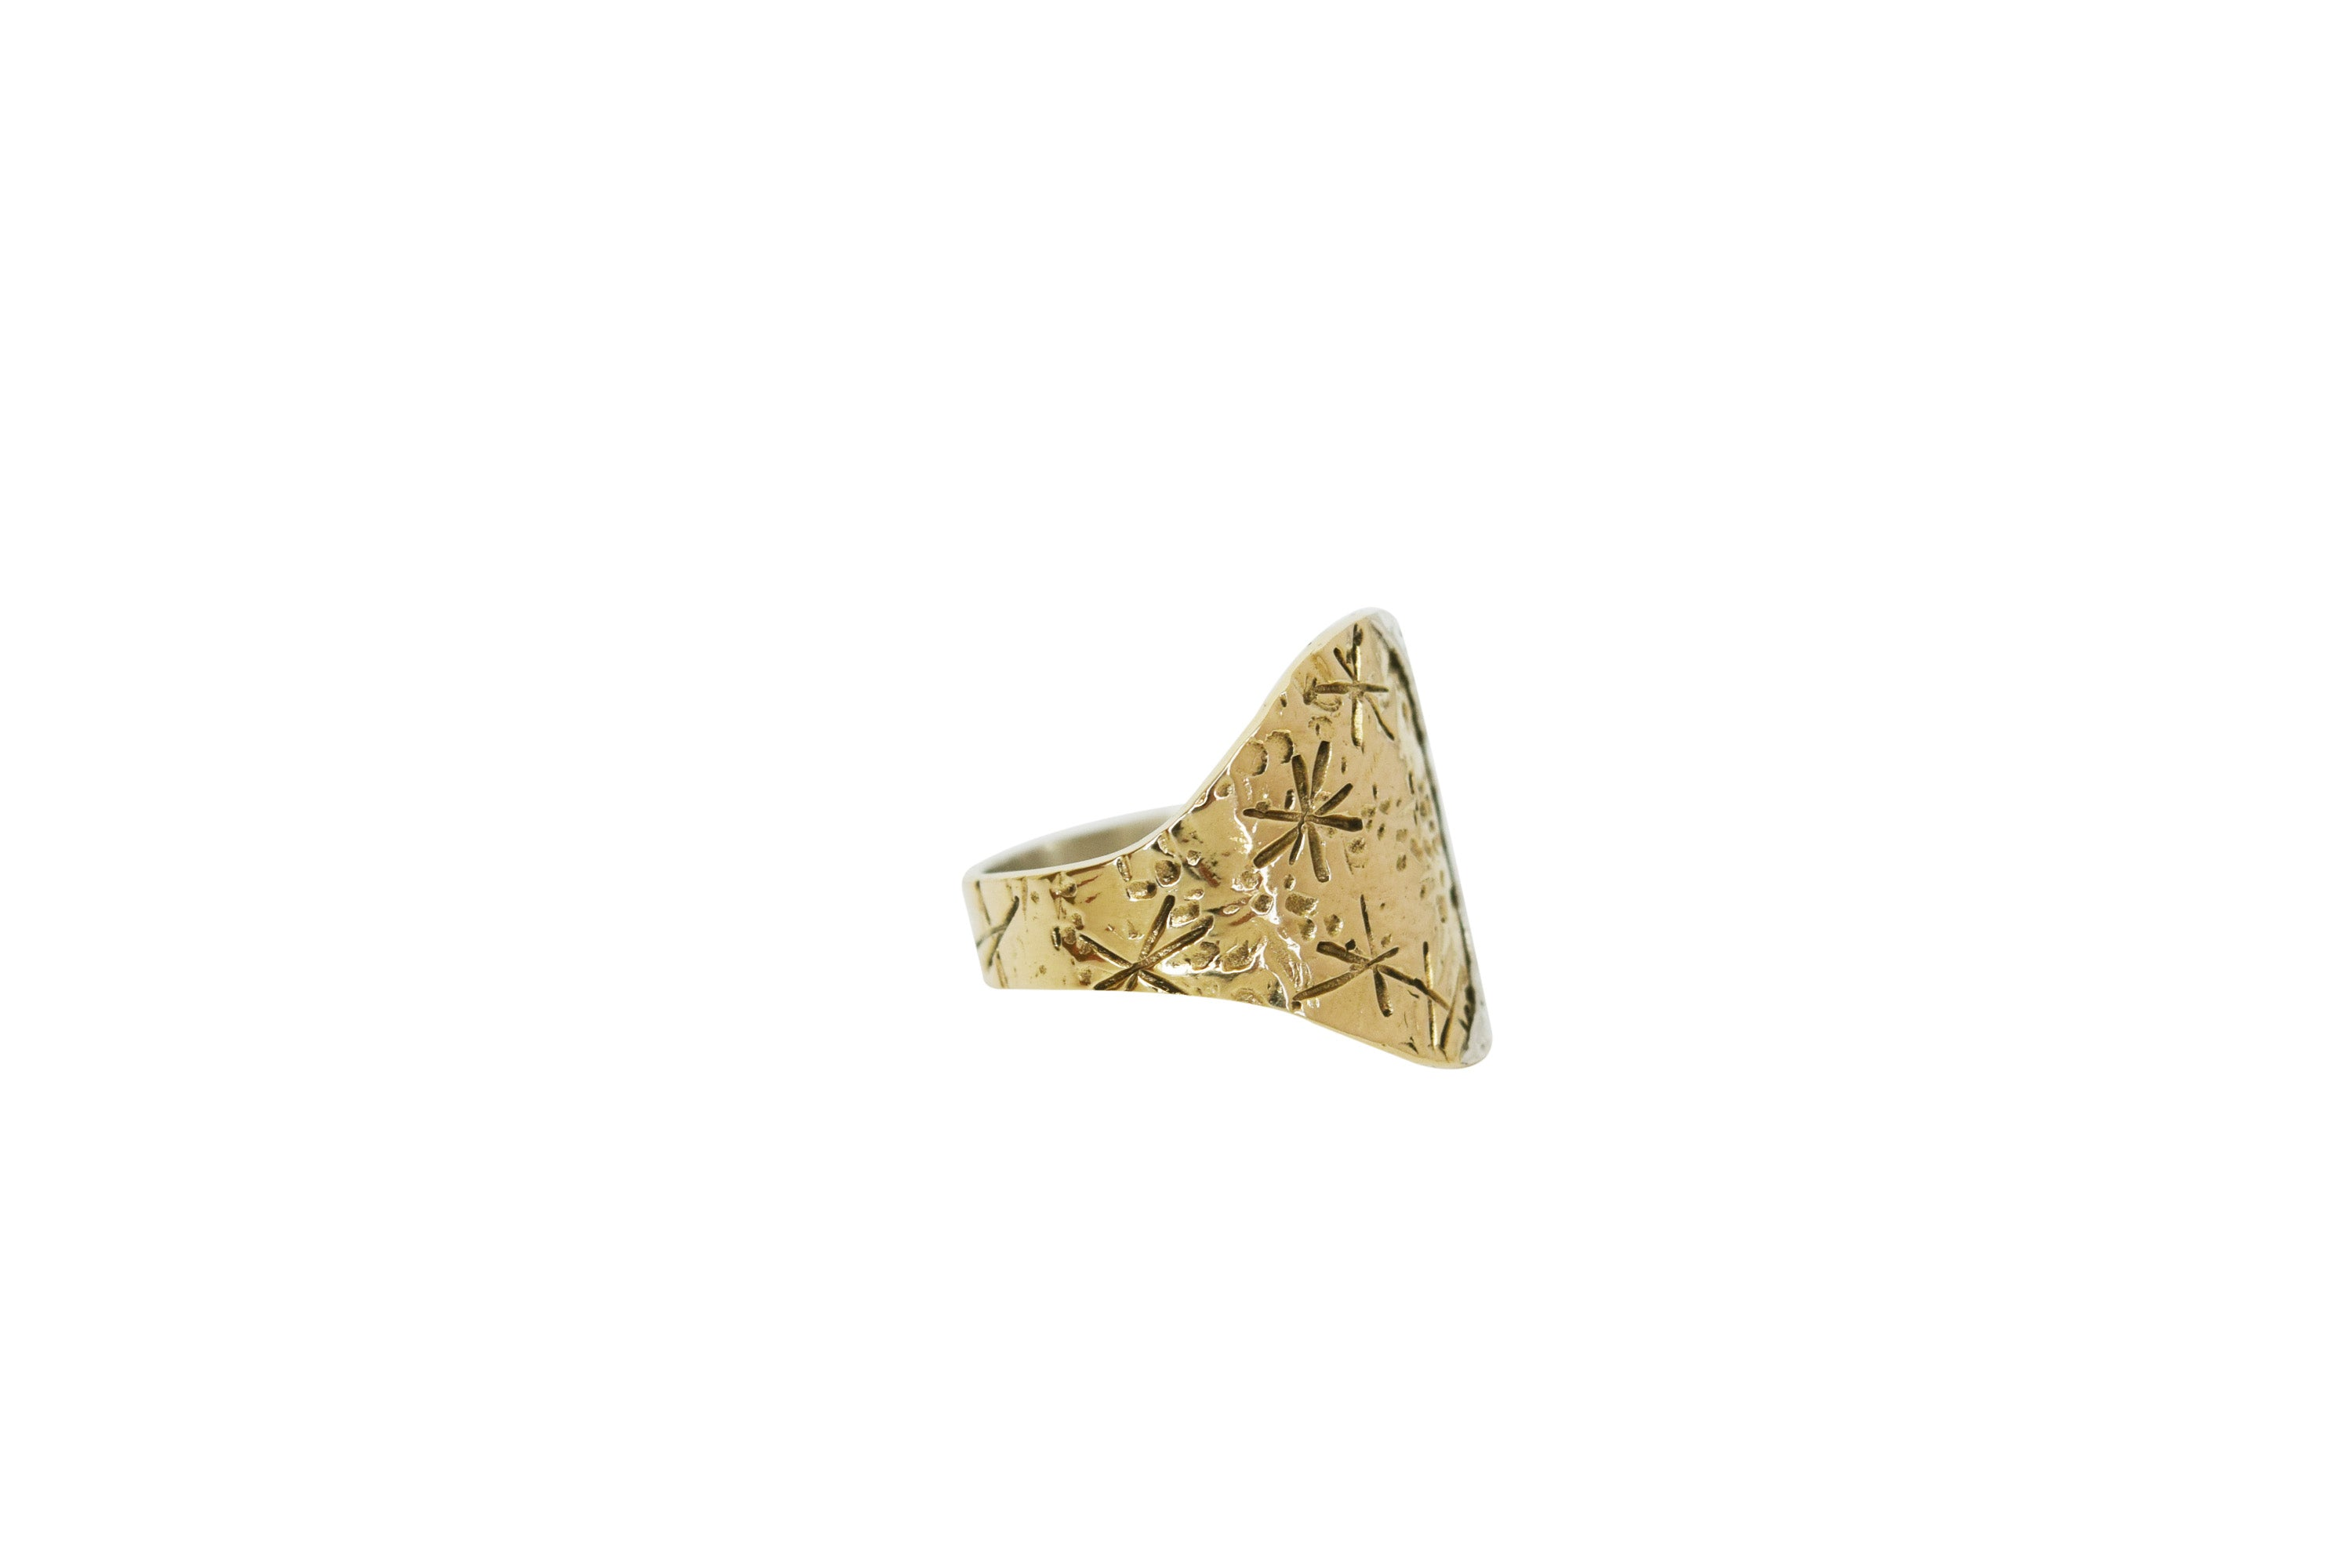 Nightscape Mixed Metal Ring - Lissa Bowie